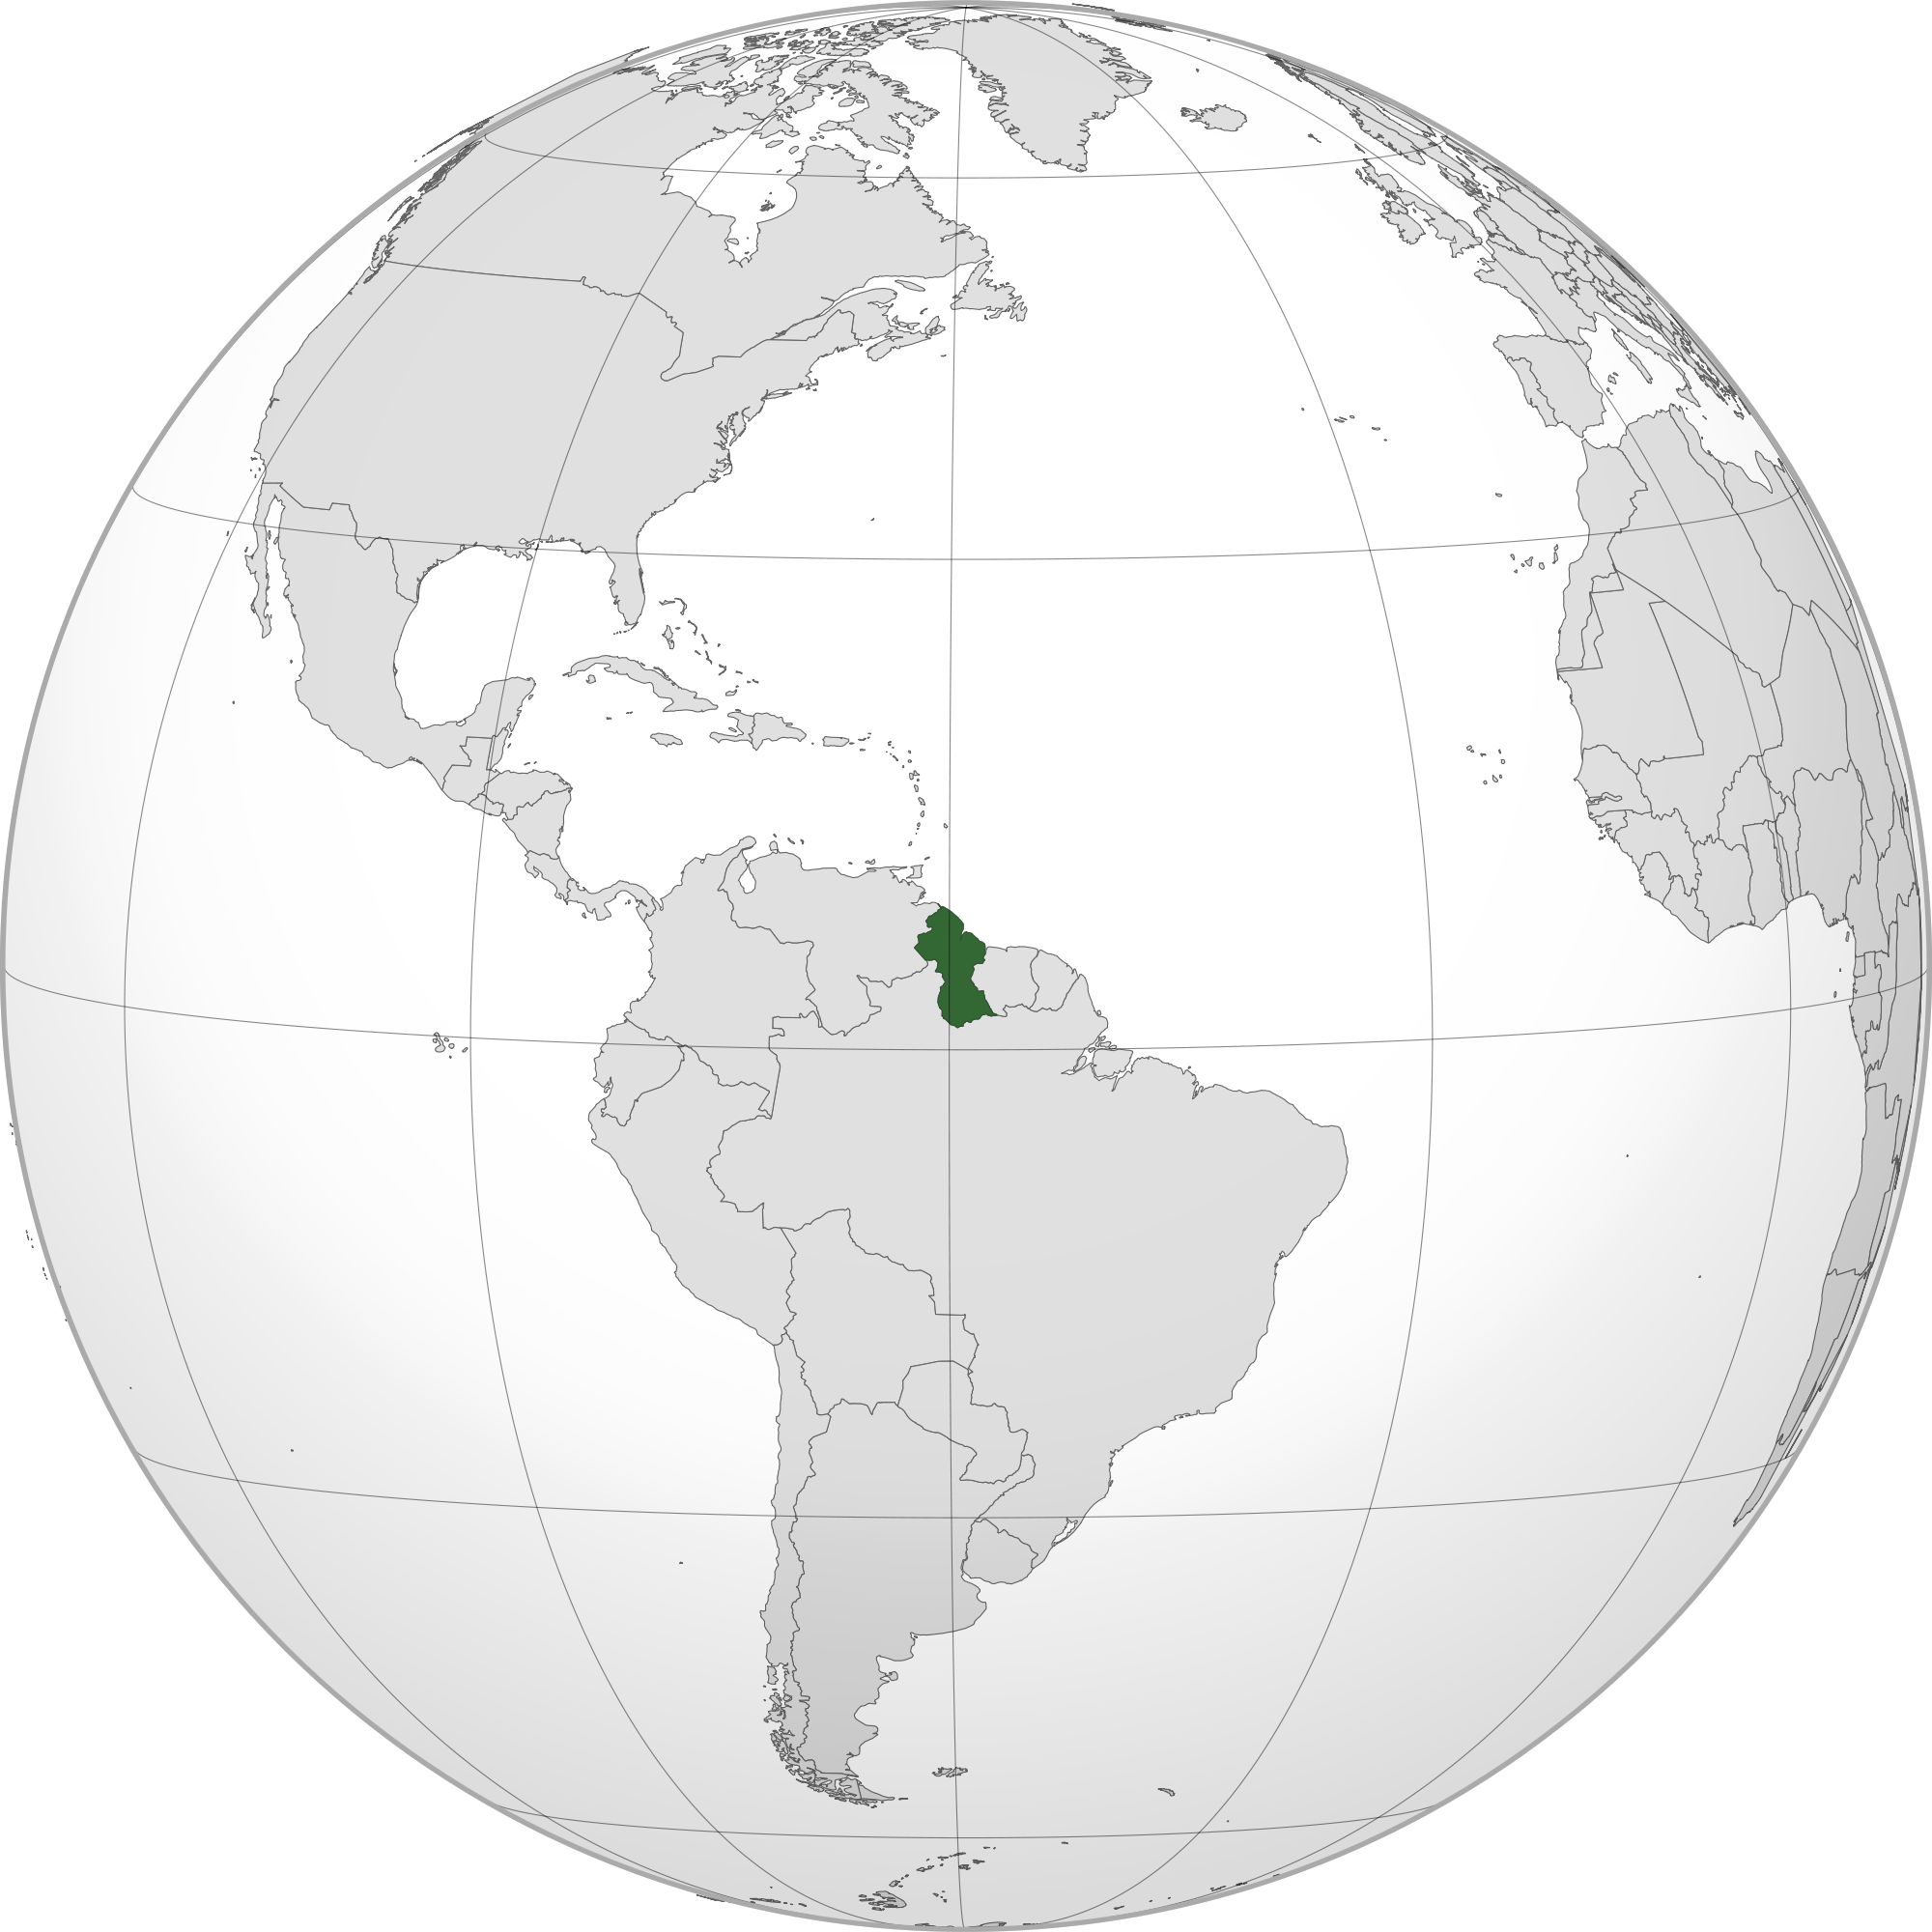 Location of the guyana in the World Map